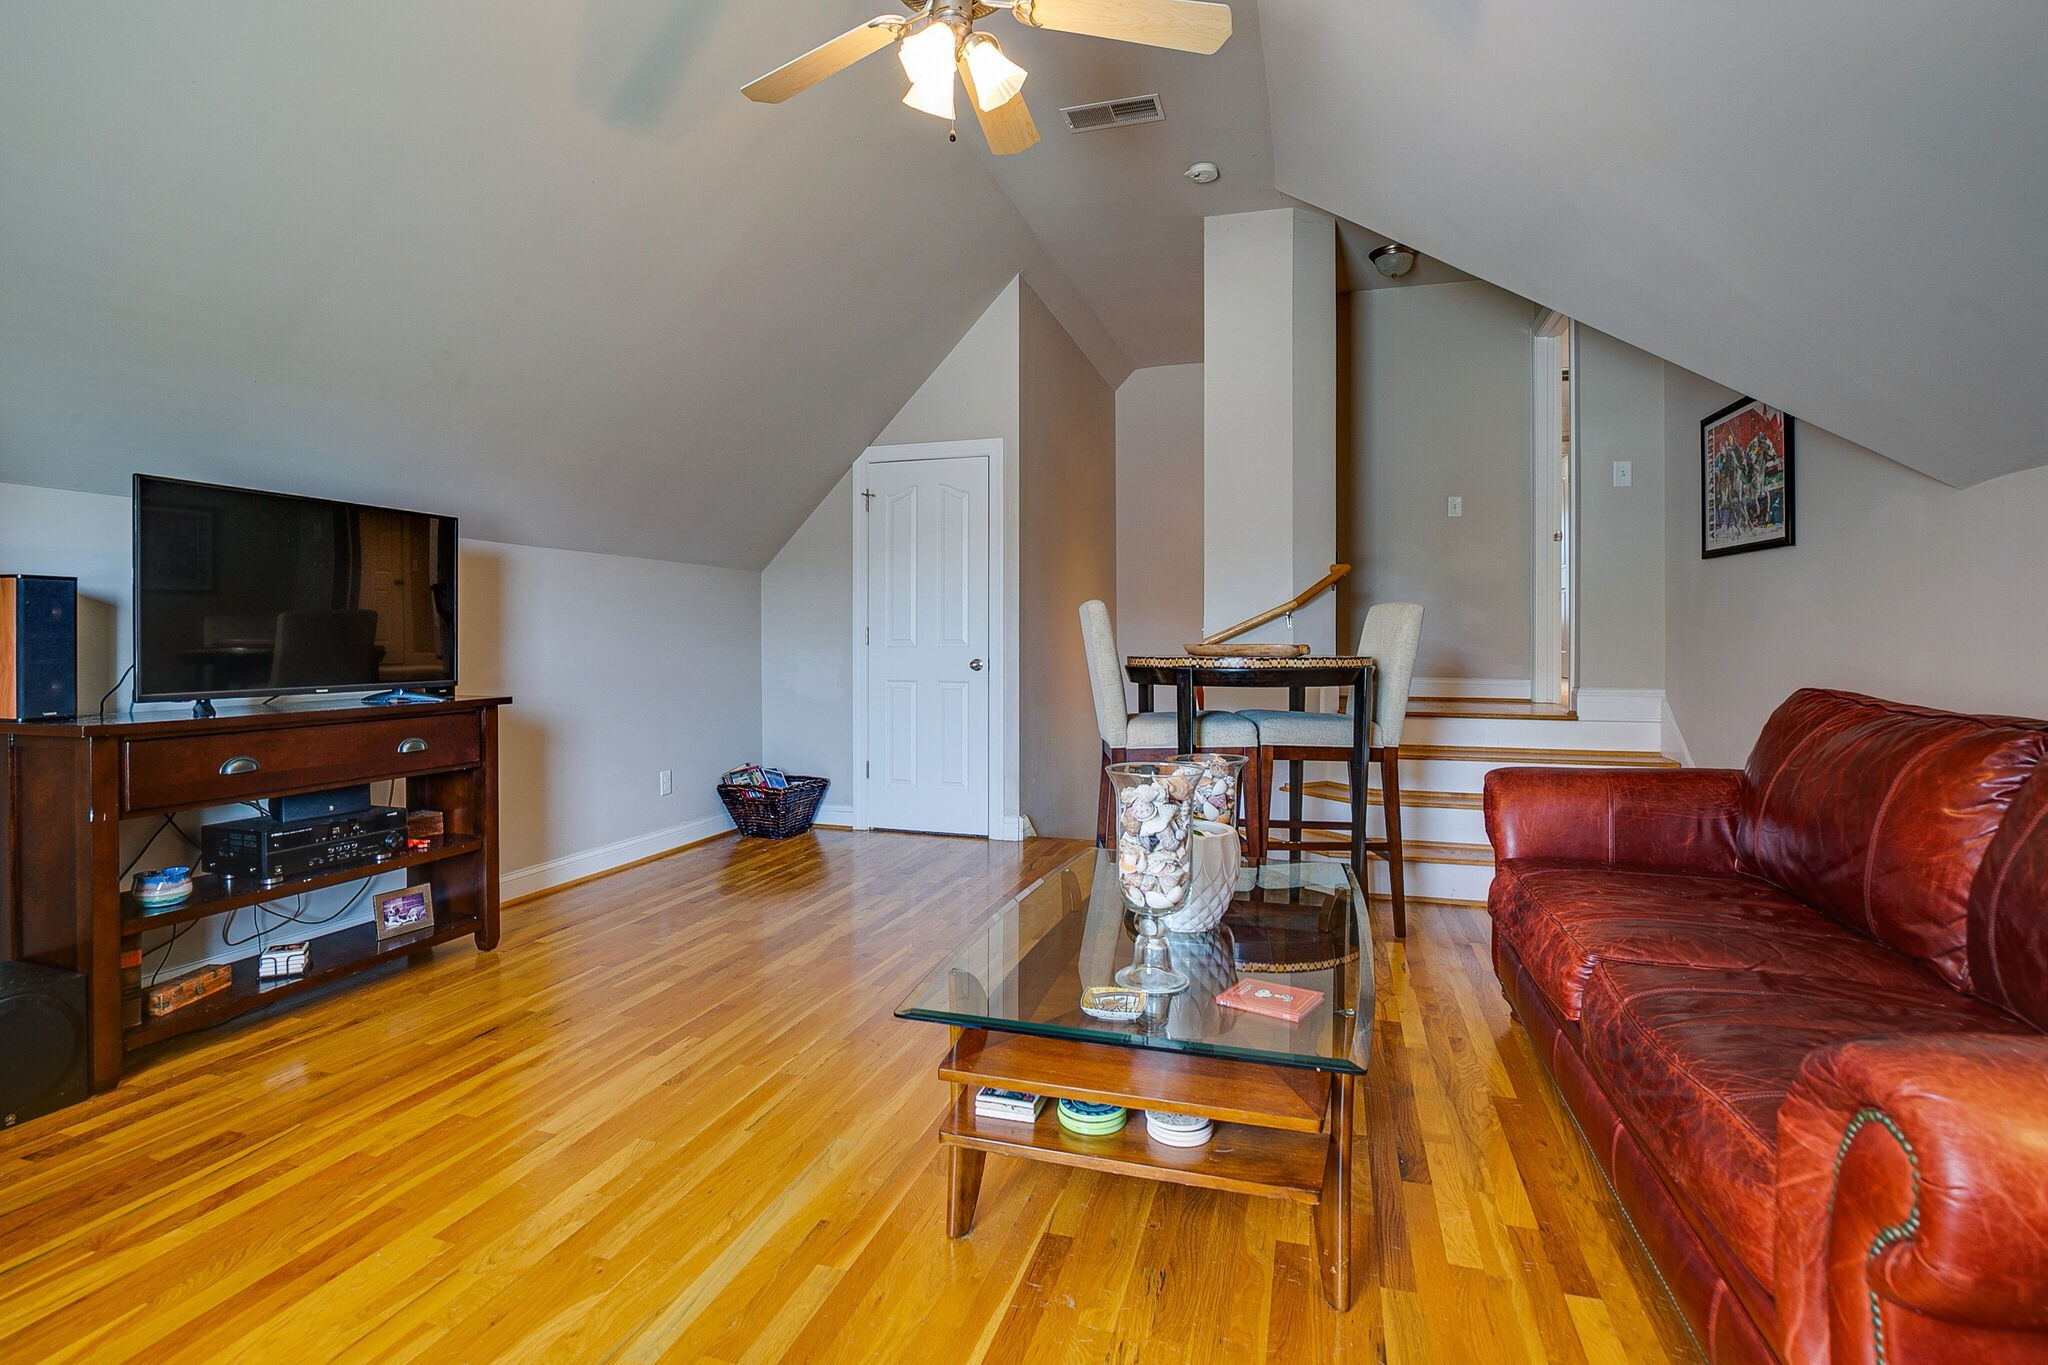 913 Northbrook Ct Property Picture 32